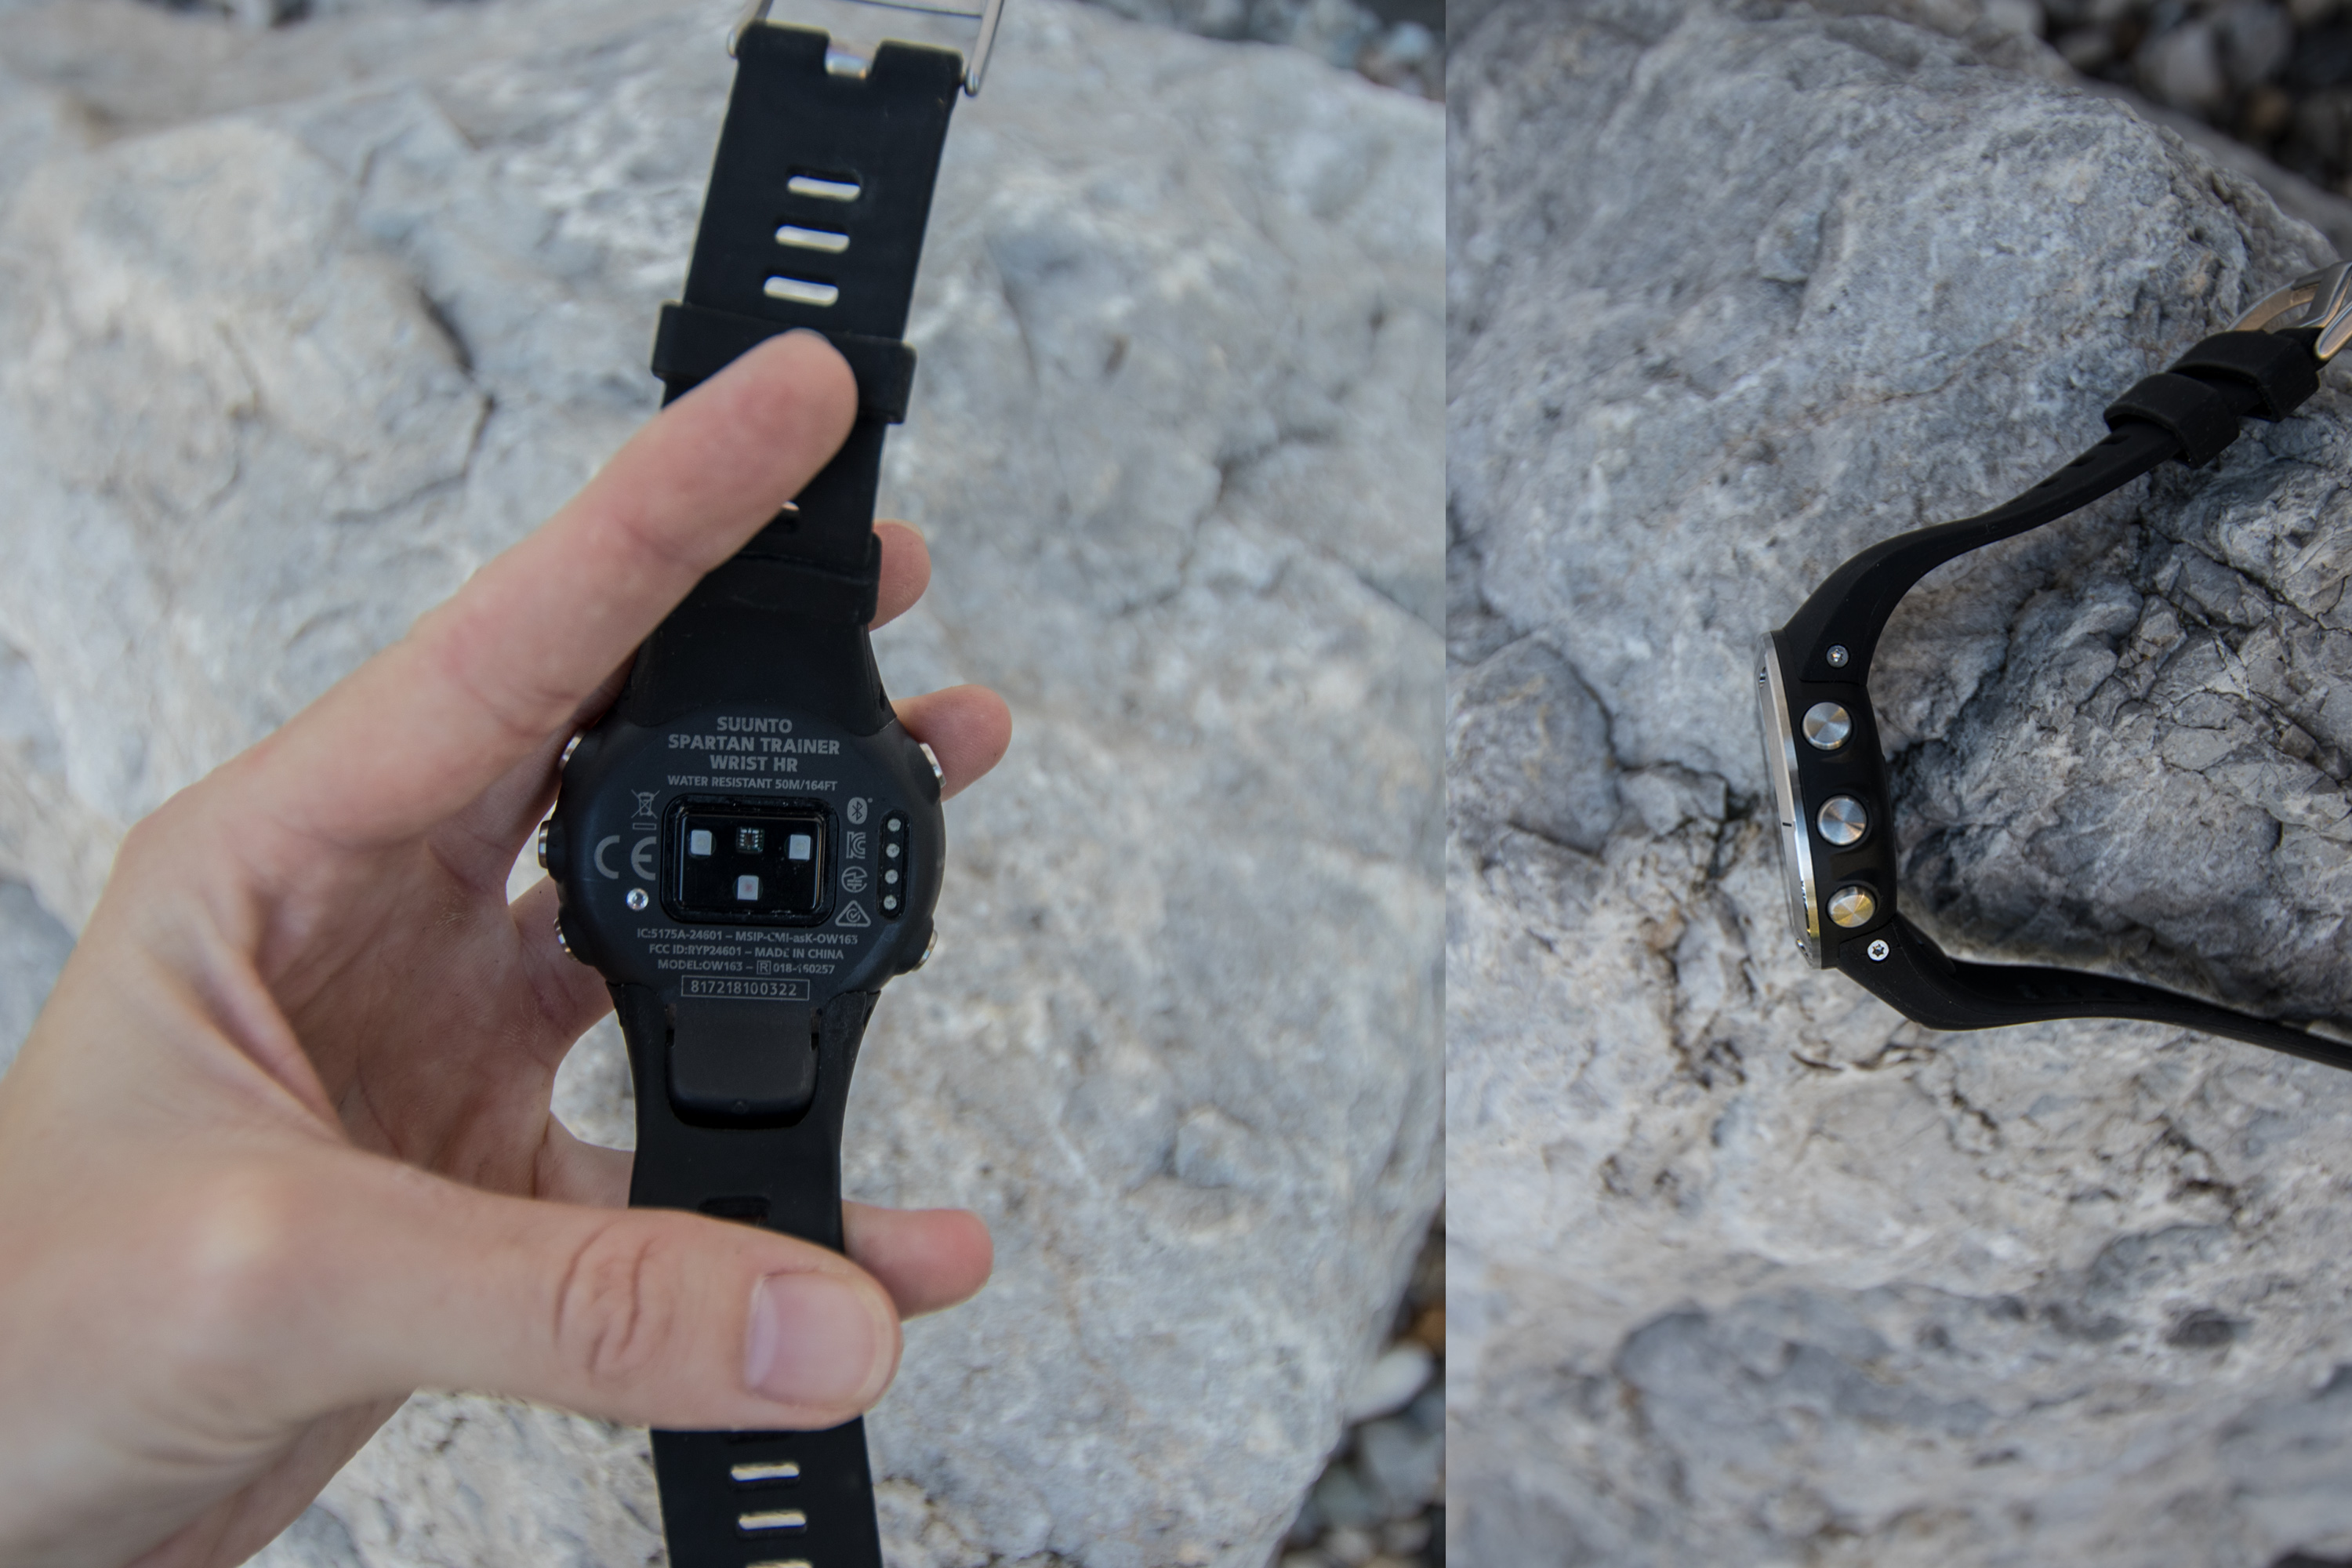 suunto-spartan-trainer-wrist-hr-product-preview-1